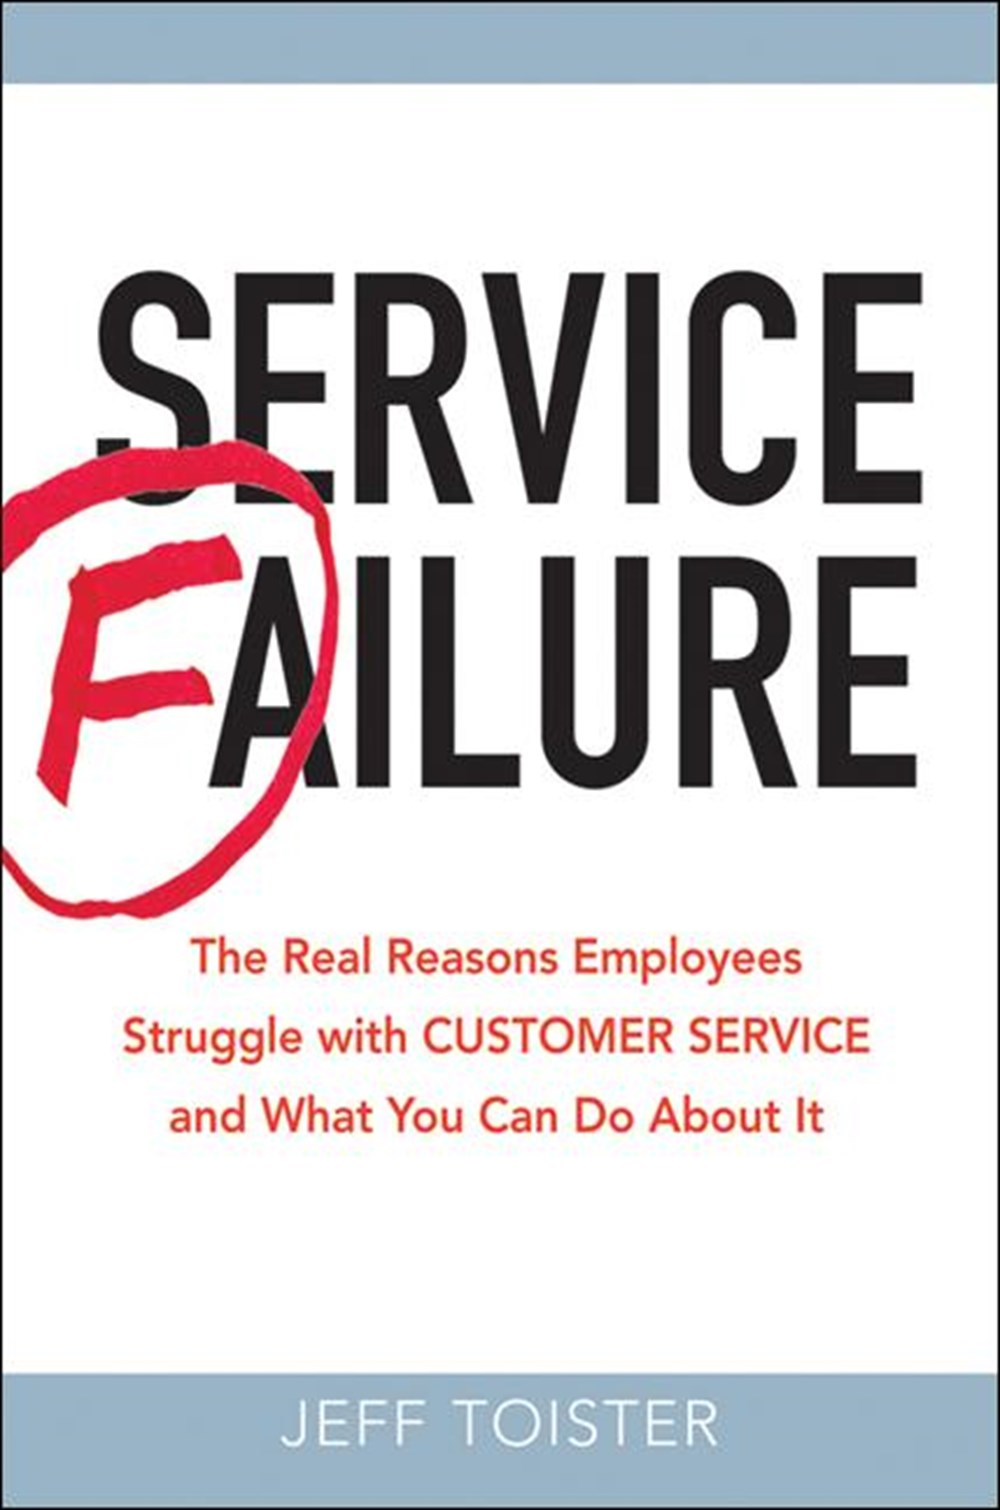 Service Failure The Real Reasons Employees Struggle with Customer Service and What You Can Do about